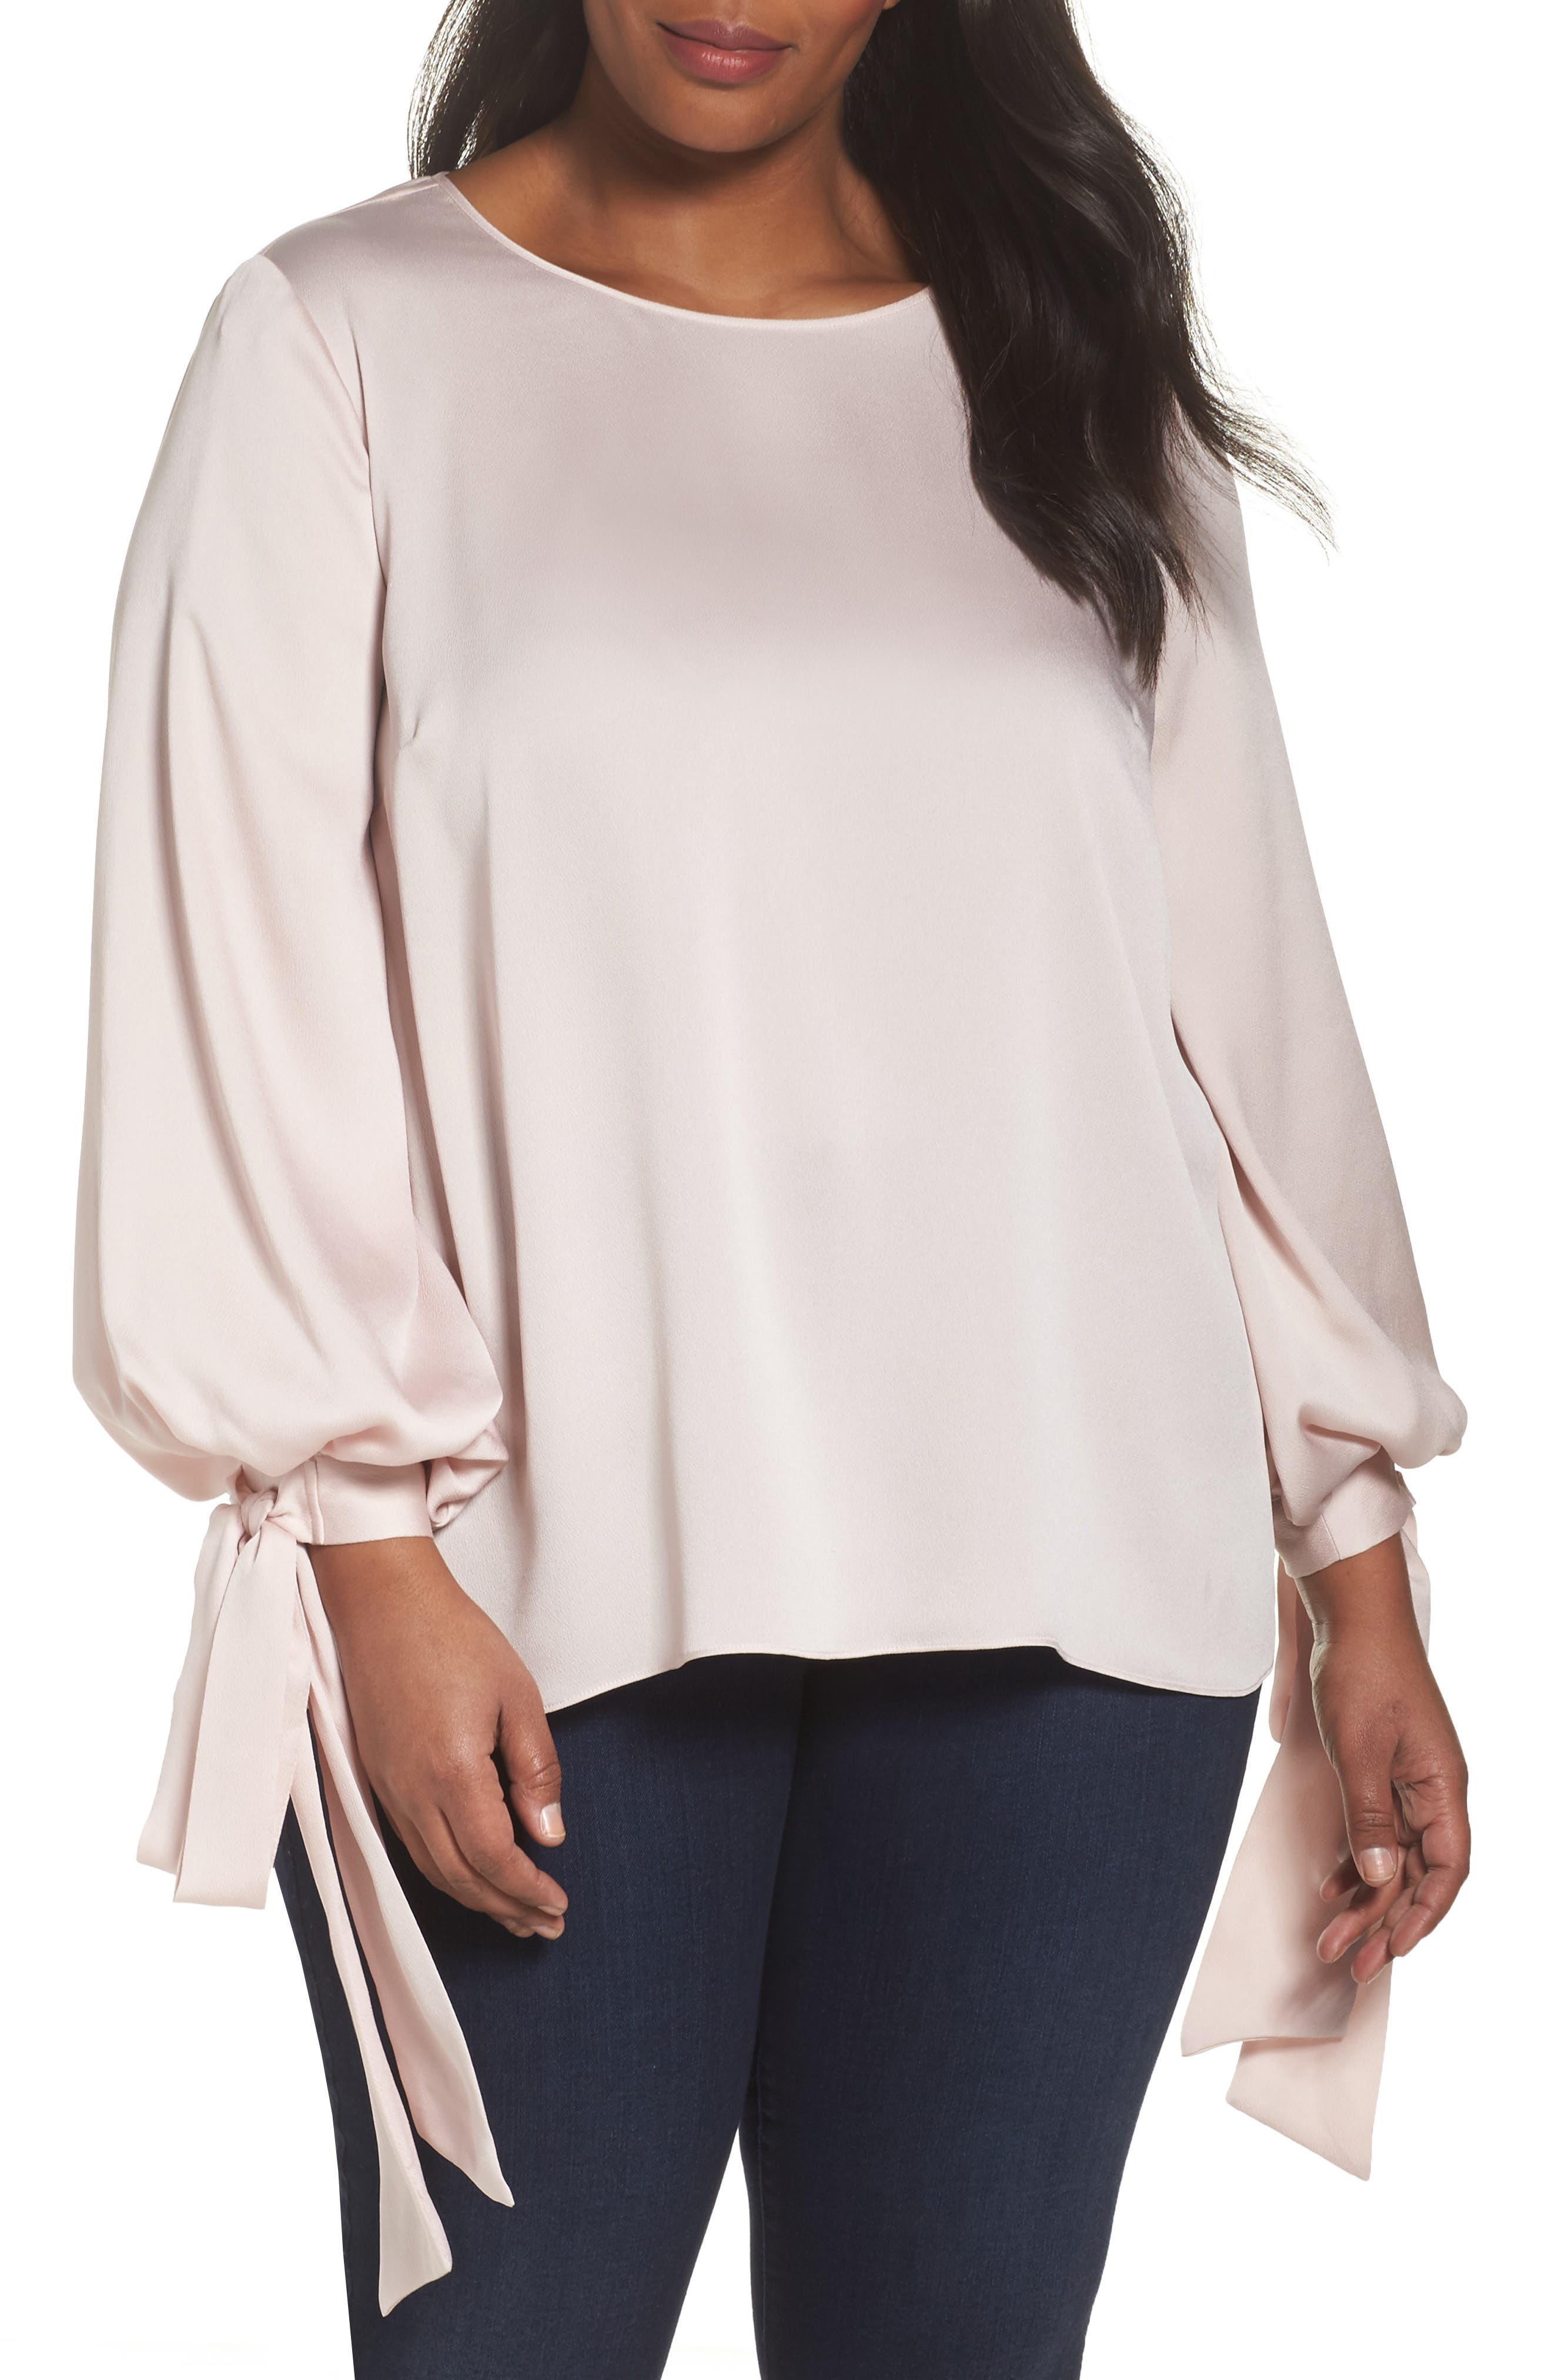 Alternate Image 1 Selected - Vince Camuto Tie Cuff Bubble Sleeve Blouse (Plus Size)